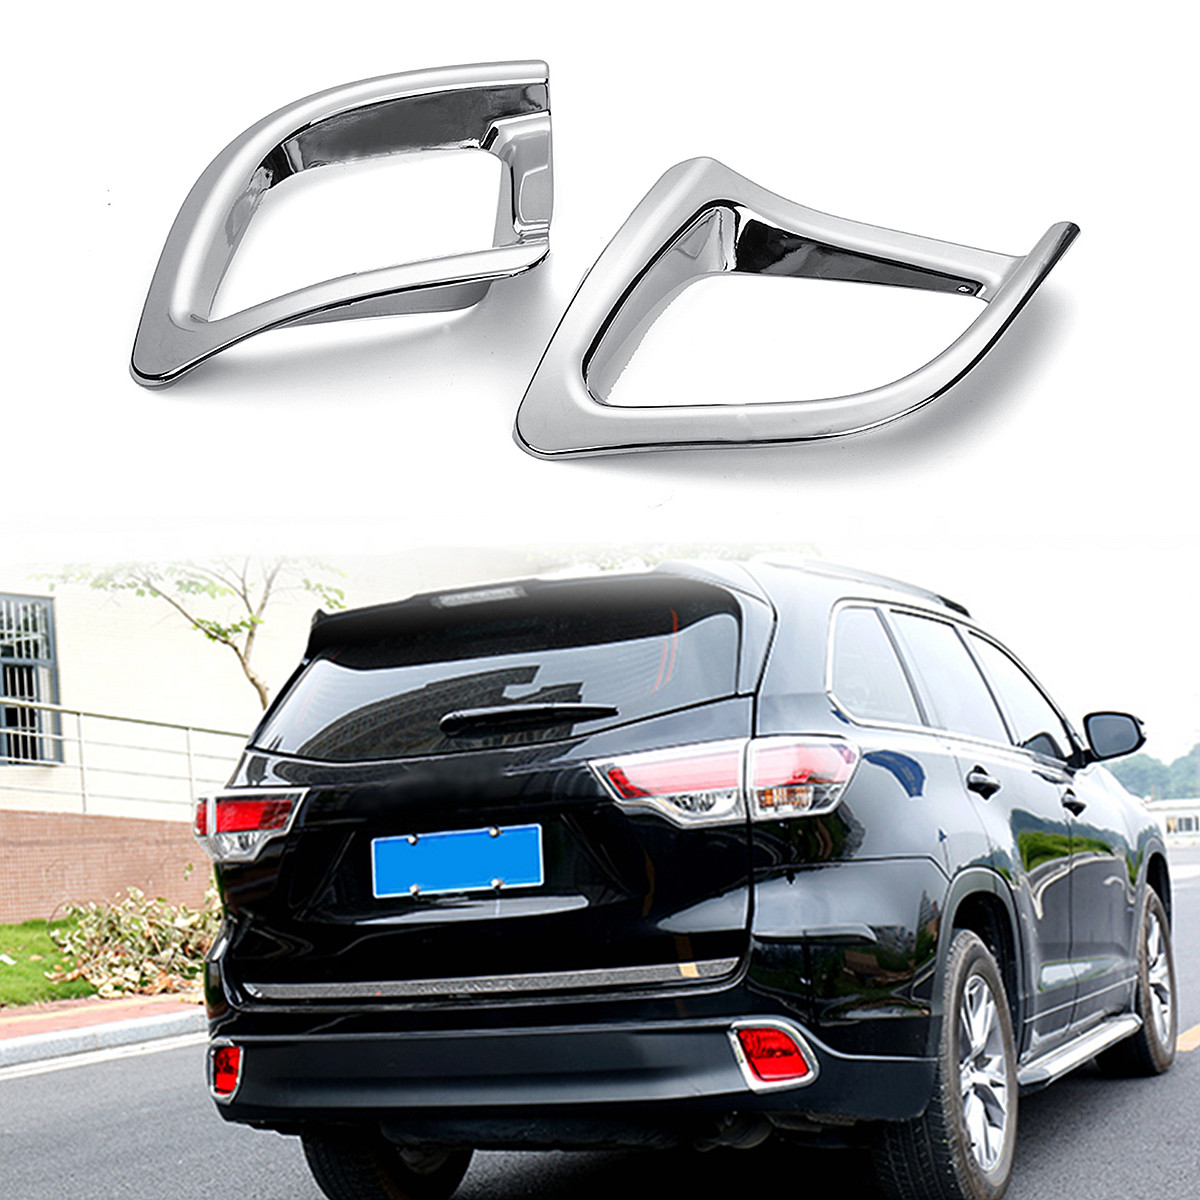 for 2015-2018 for Toyota Highlander 2 x Chrome Rear Bumper Fog Light Lamp Cover Trims Waterproof Glossy Mirror Surface no Fade